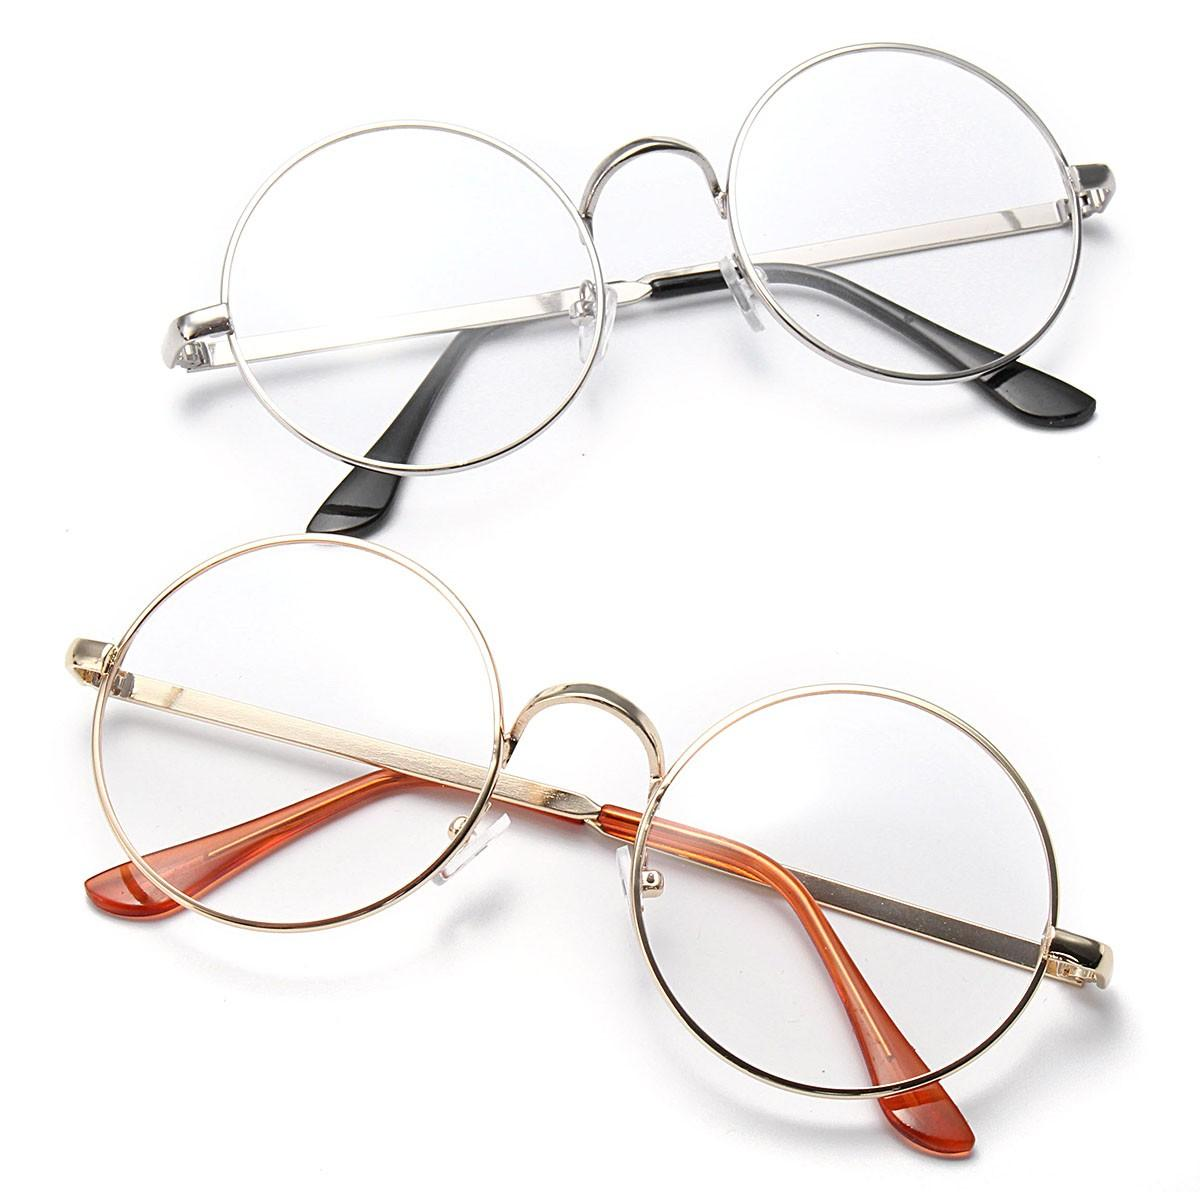 312b97a895f3 unisex big round spectacles metal frame plain glasses vintage eyeglasses  for men women at Banggood sold out